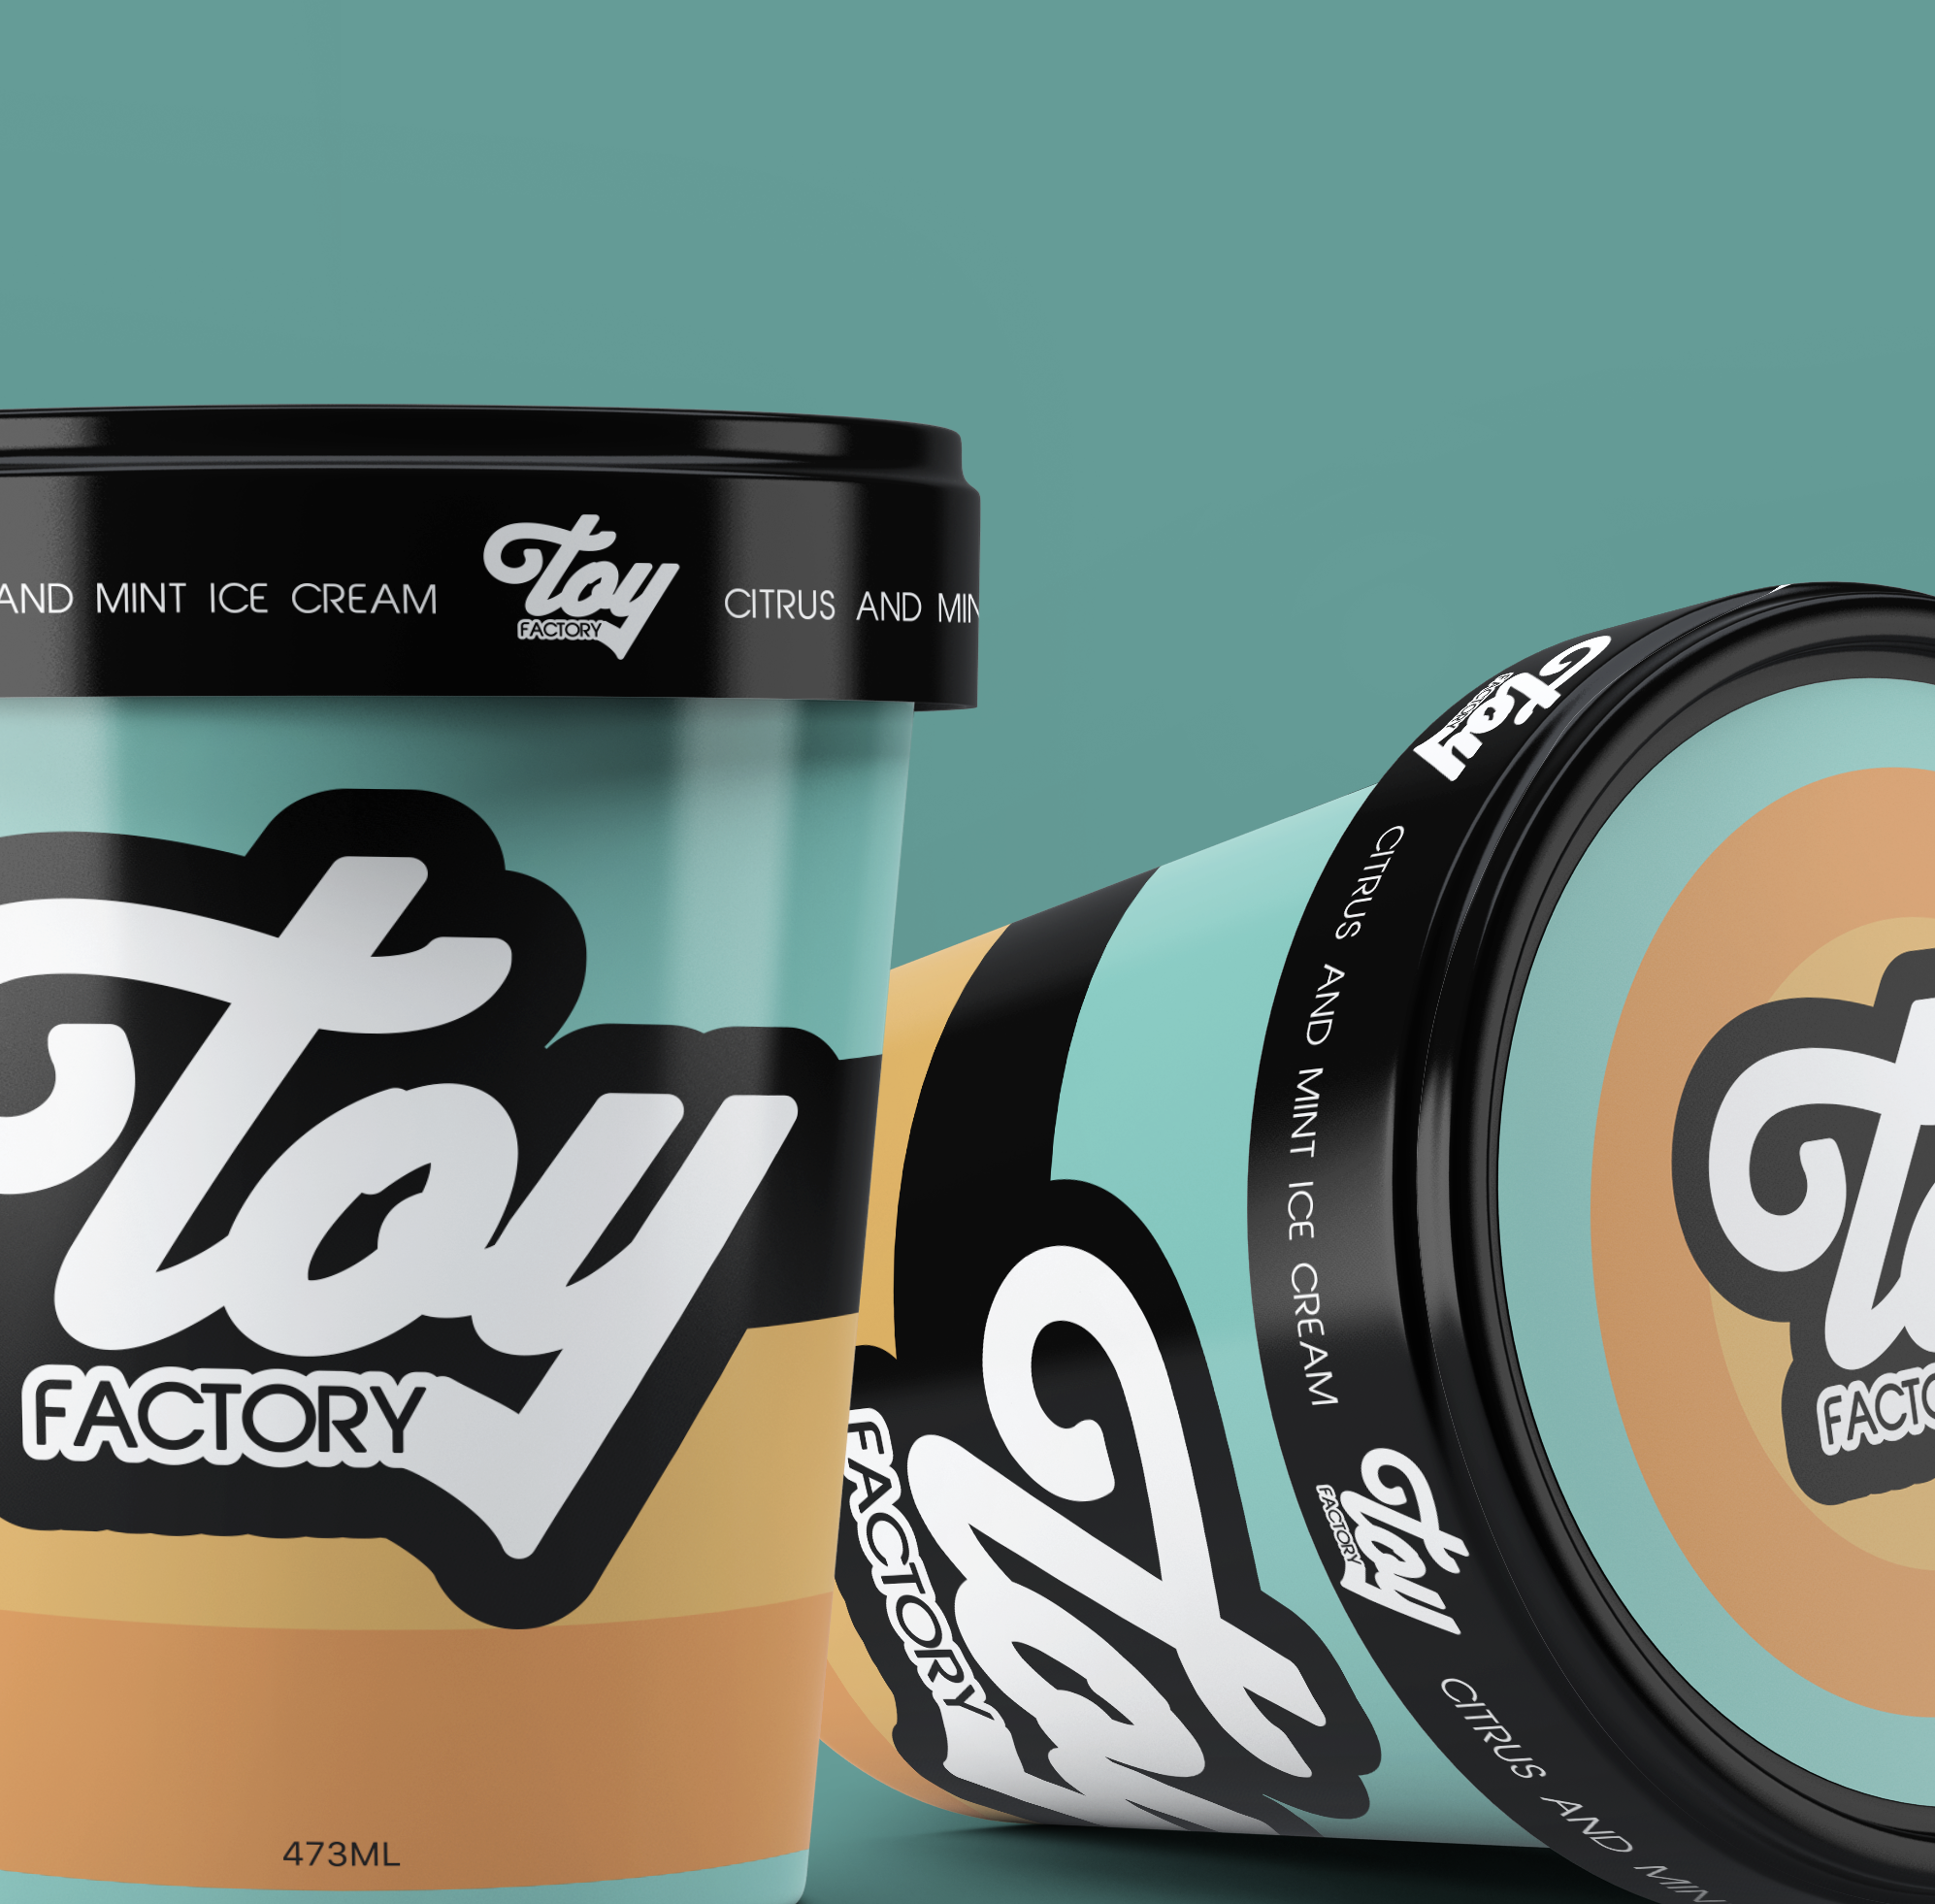 candy brophy creative - Toy Factory Ice Cream7.png